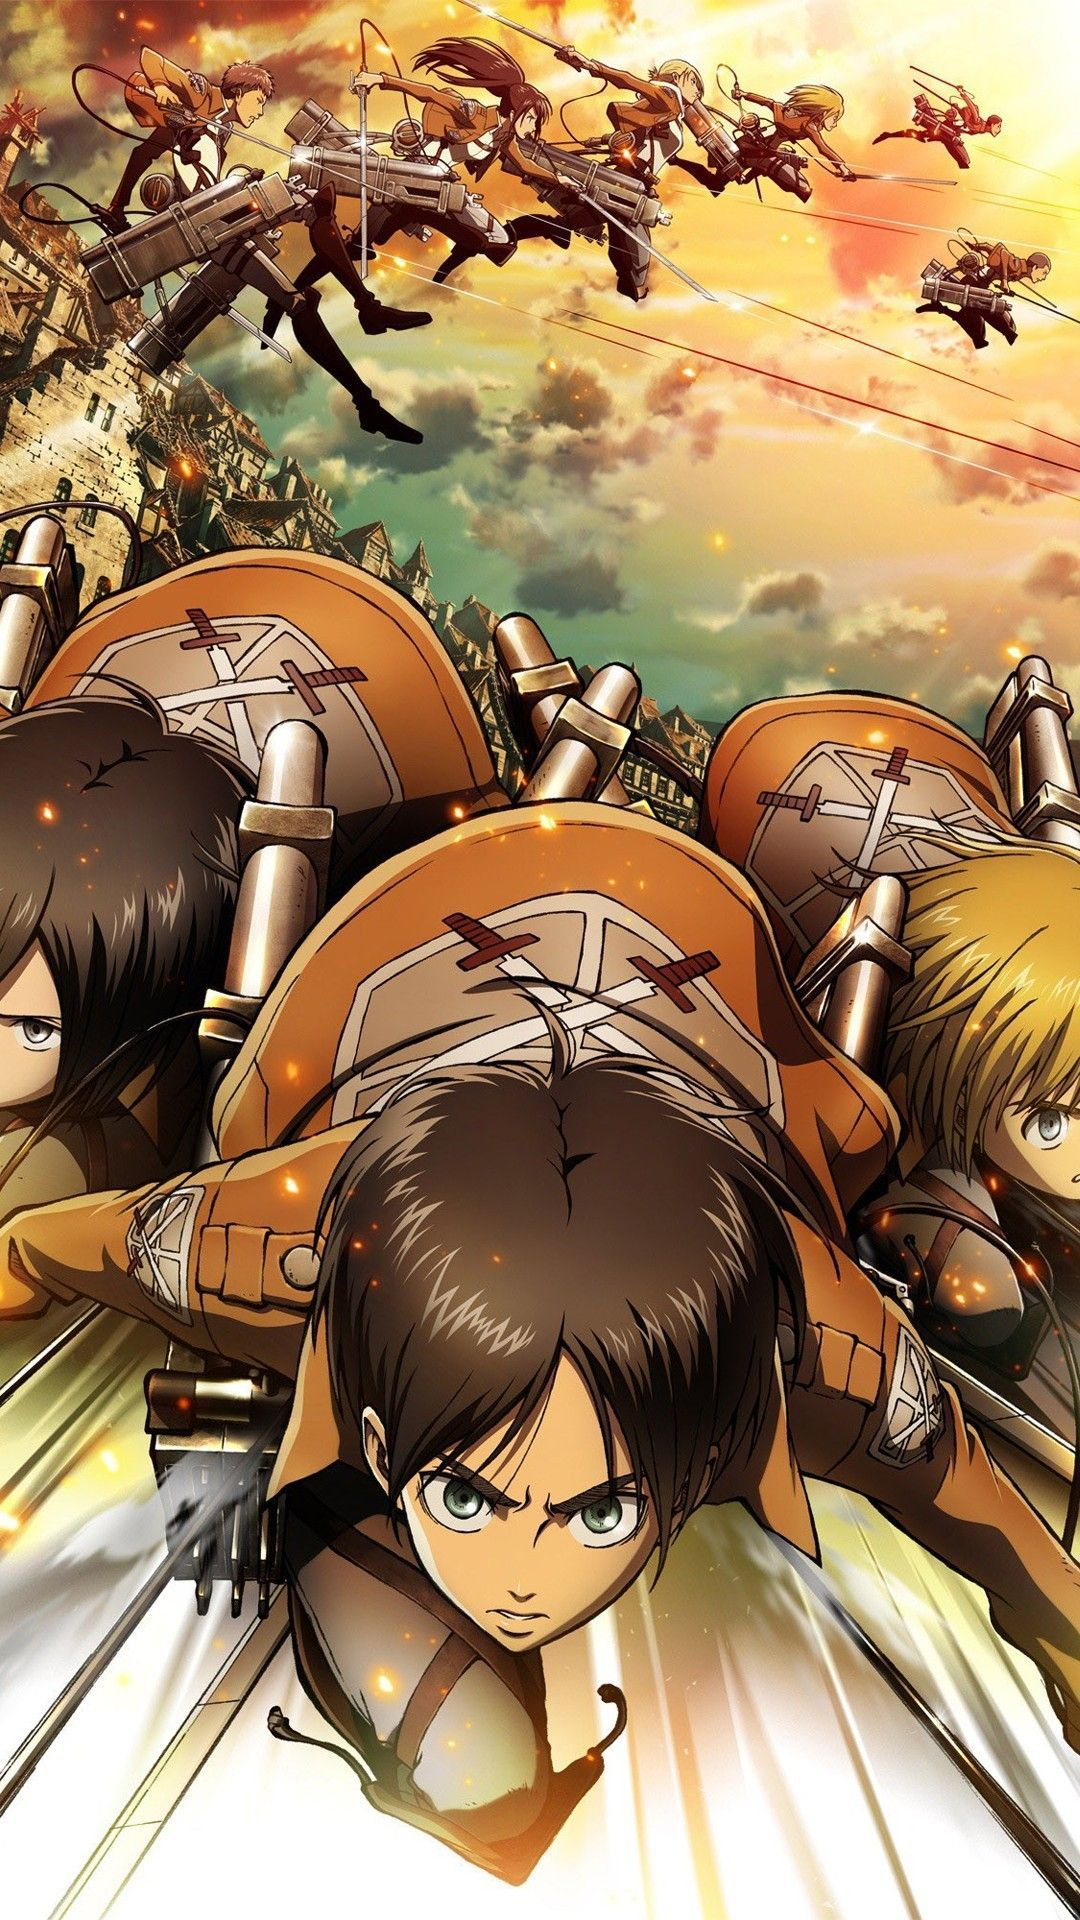 Pixel art brings a world of. Attack On Titan iPhone Wallpapers - Wallpaper Cave